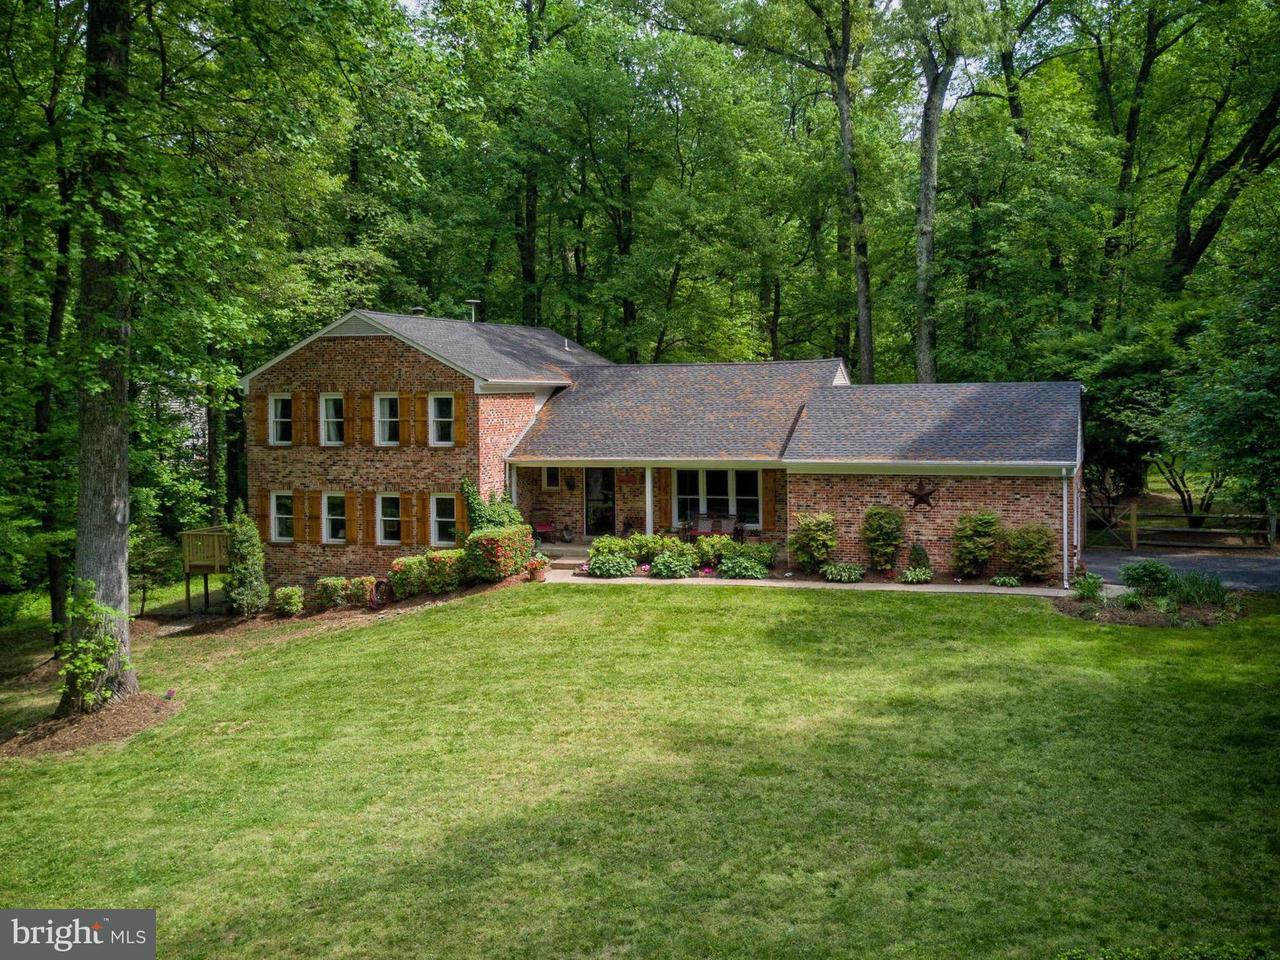 Single Family Home for Sale at 927 WELHAM GREEN Road 927 WELHAM GREEN Road Great Falls, Virginia 22066 United States